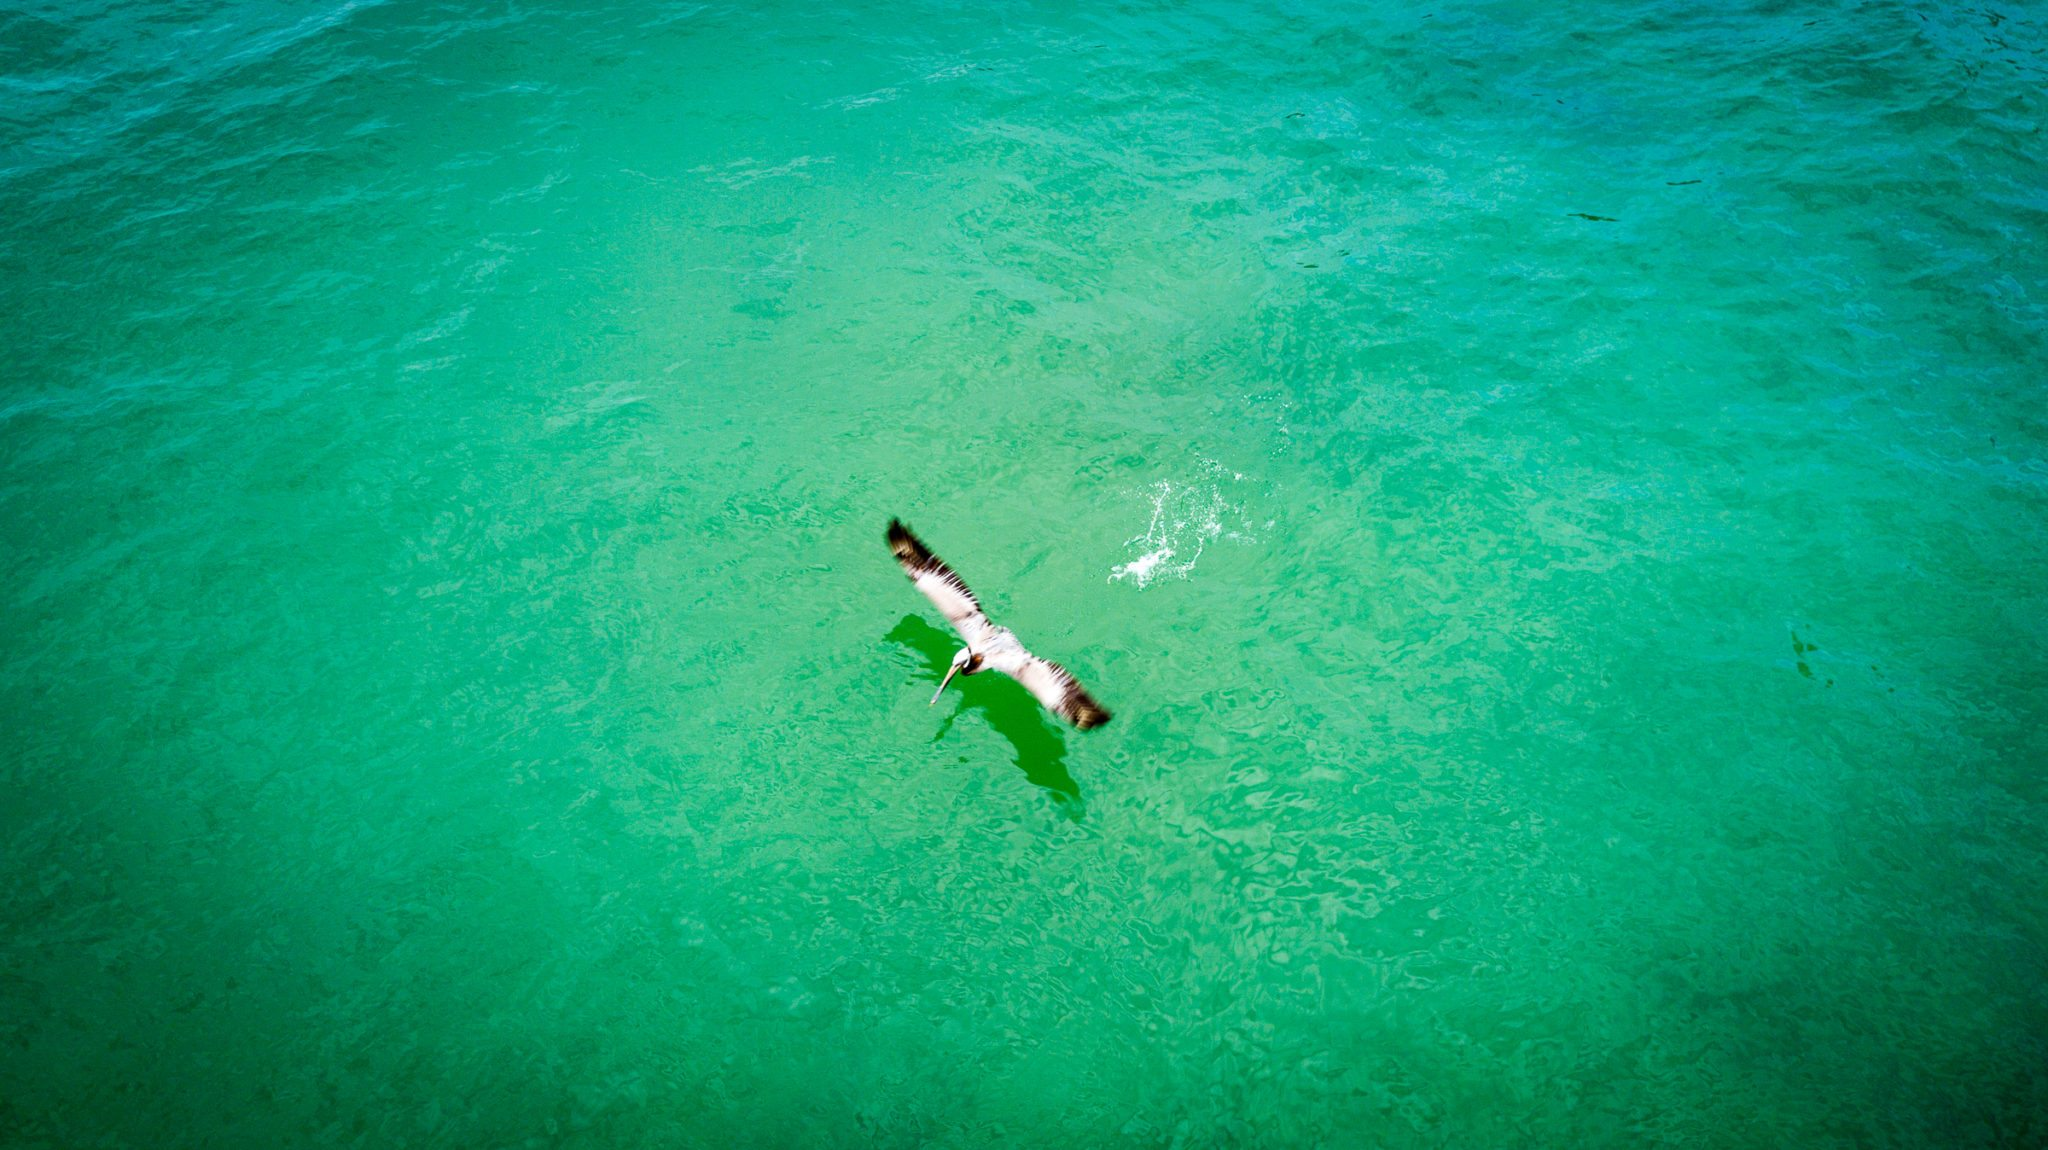 A Brown Pelican takes off over a turquoise Pacific Ocean.